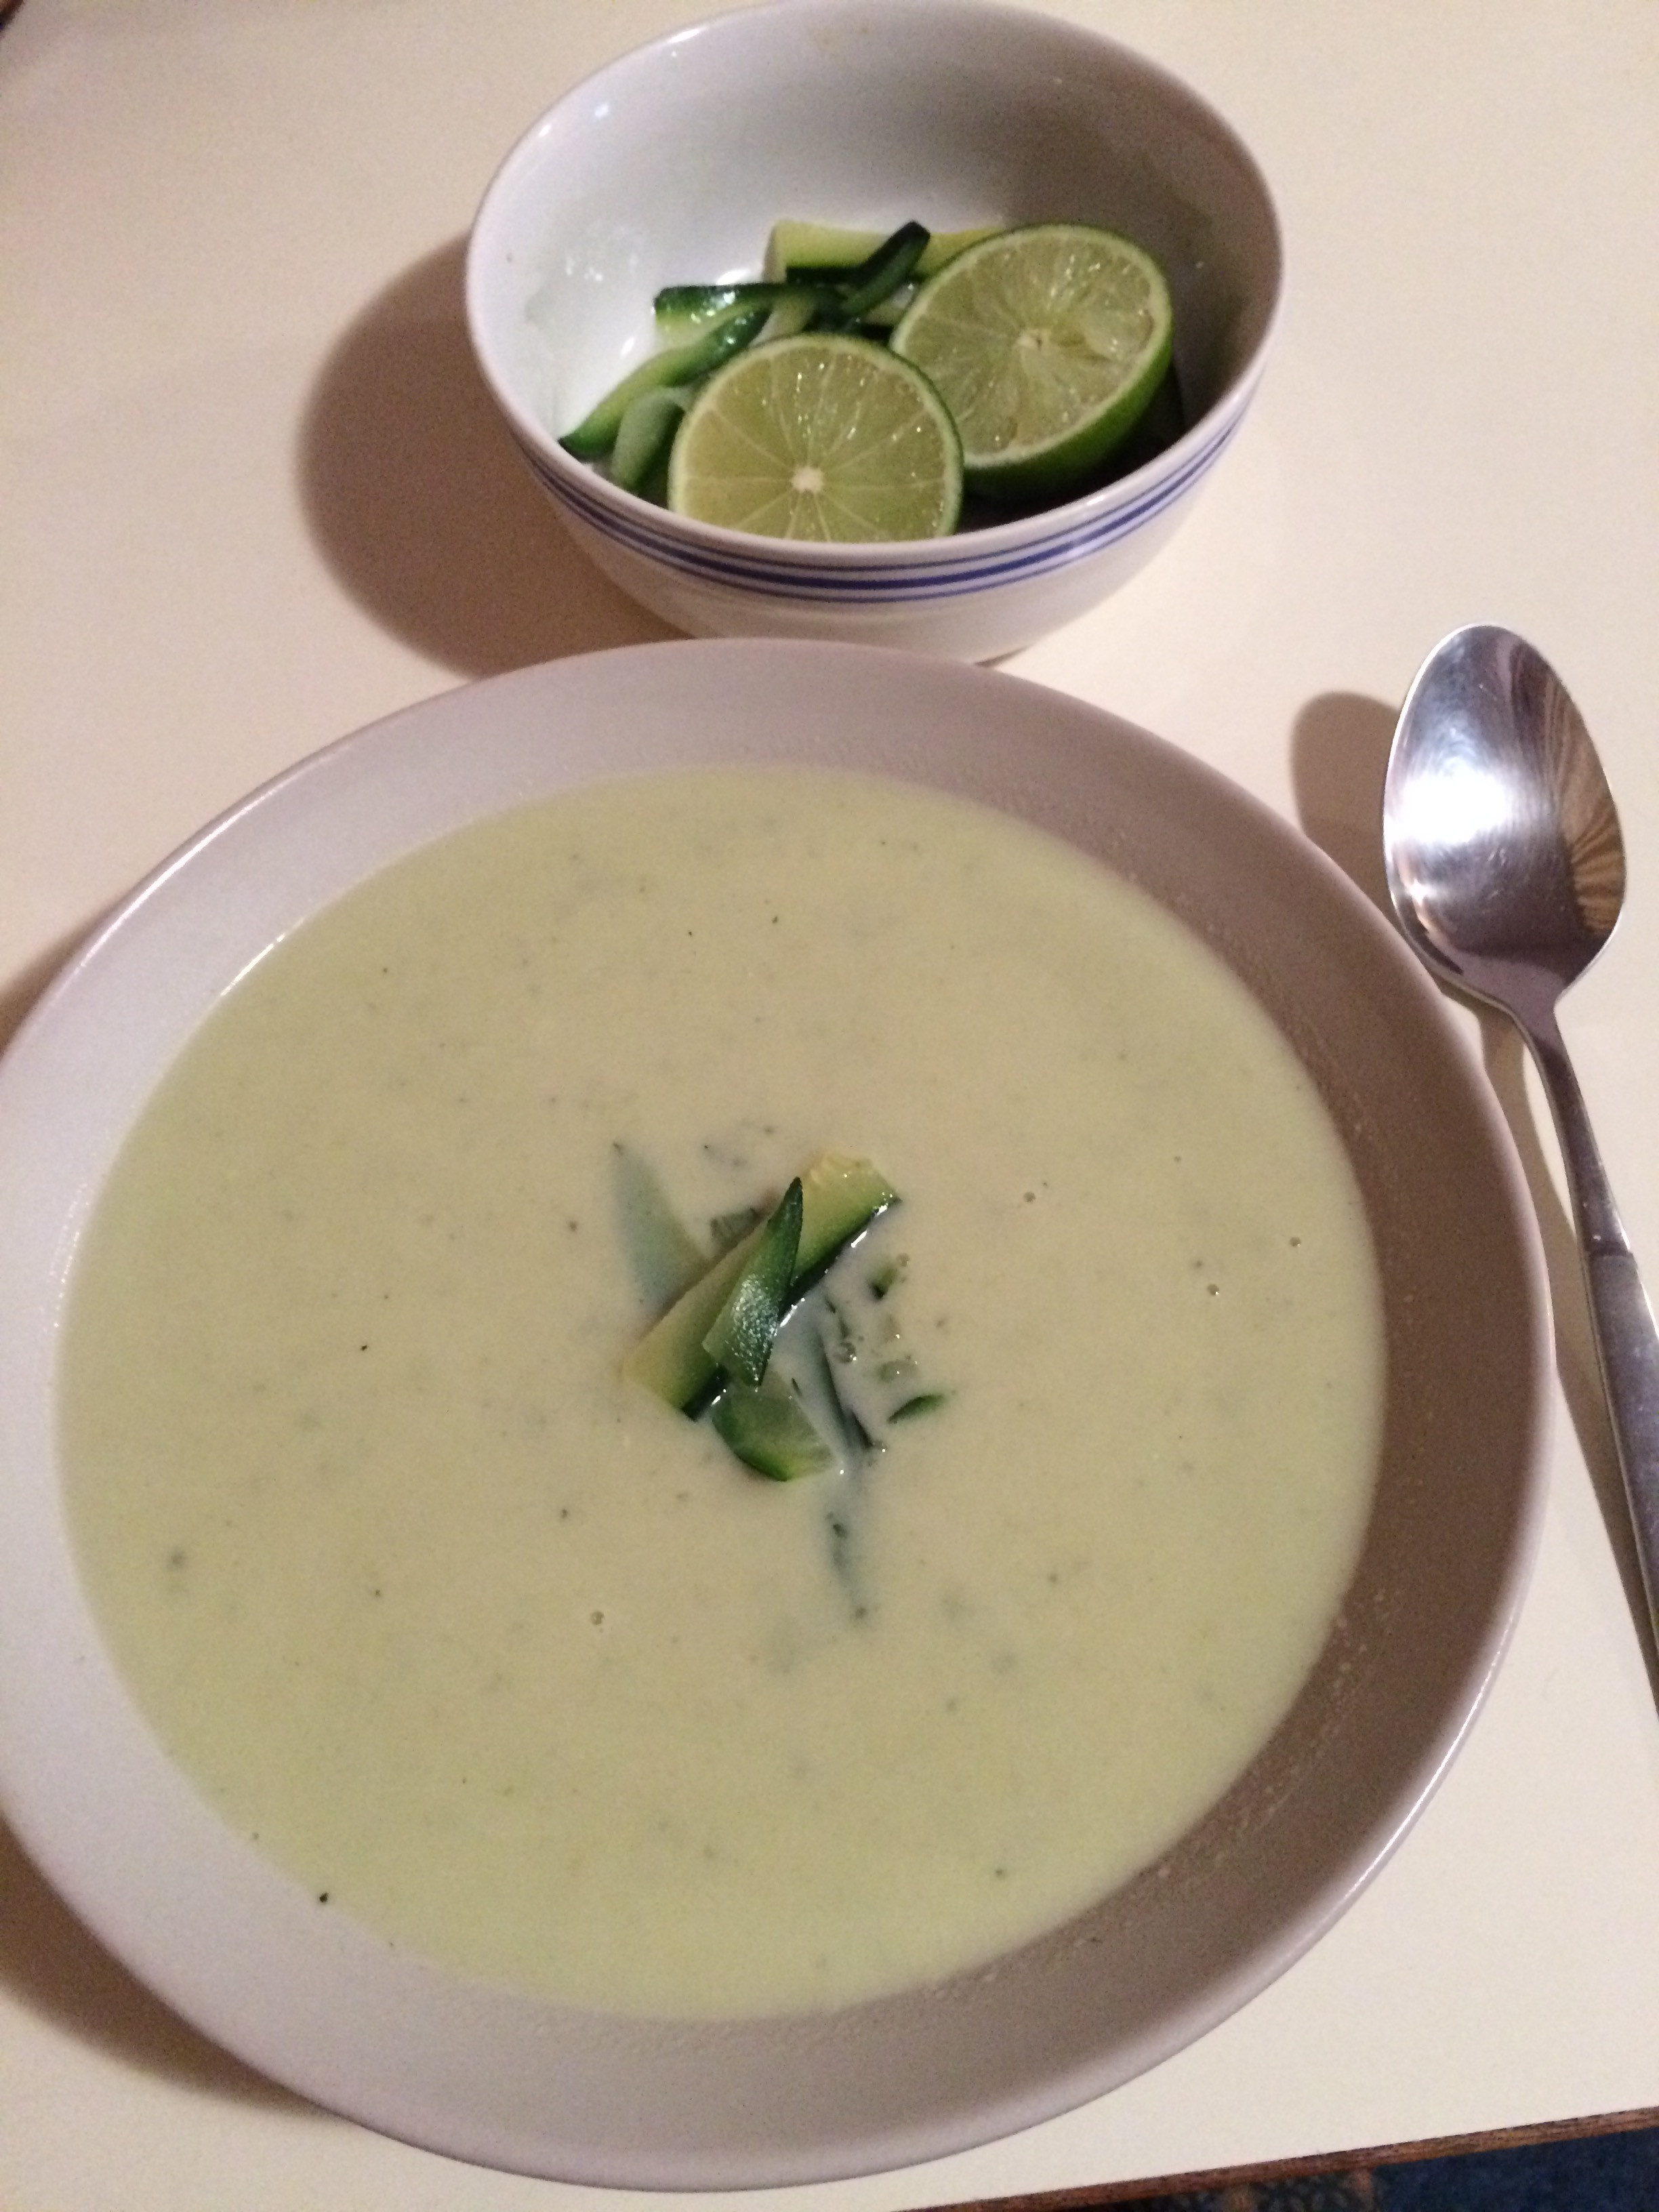 Zucchini Soup Recipe  Spicy Zucchini Soup Recipe — Dishmaps